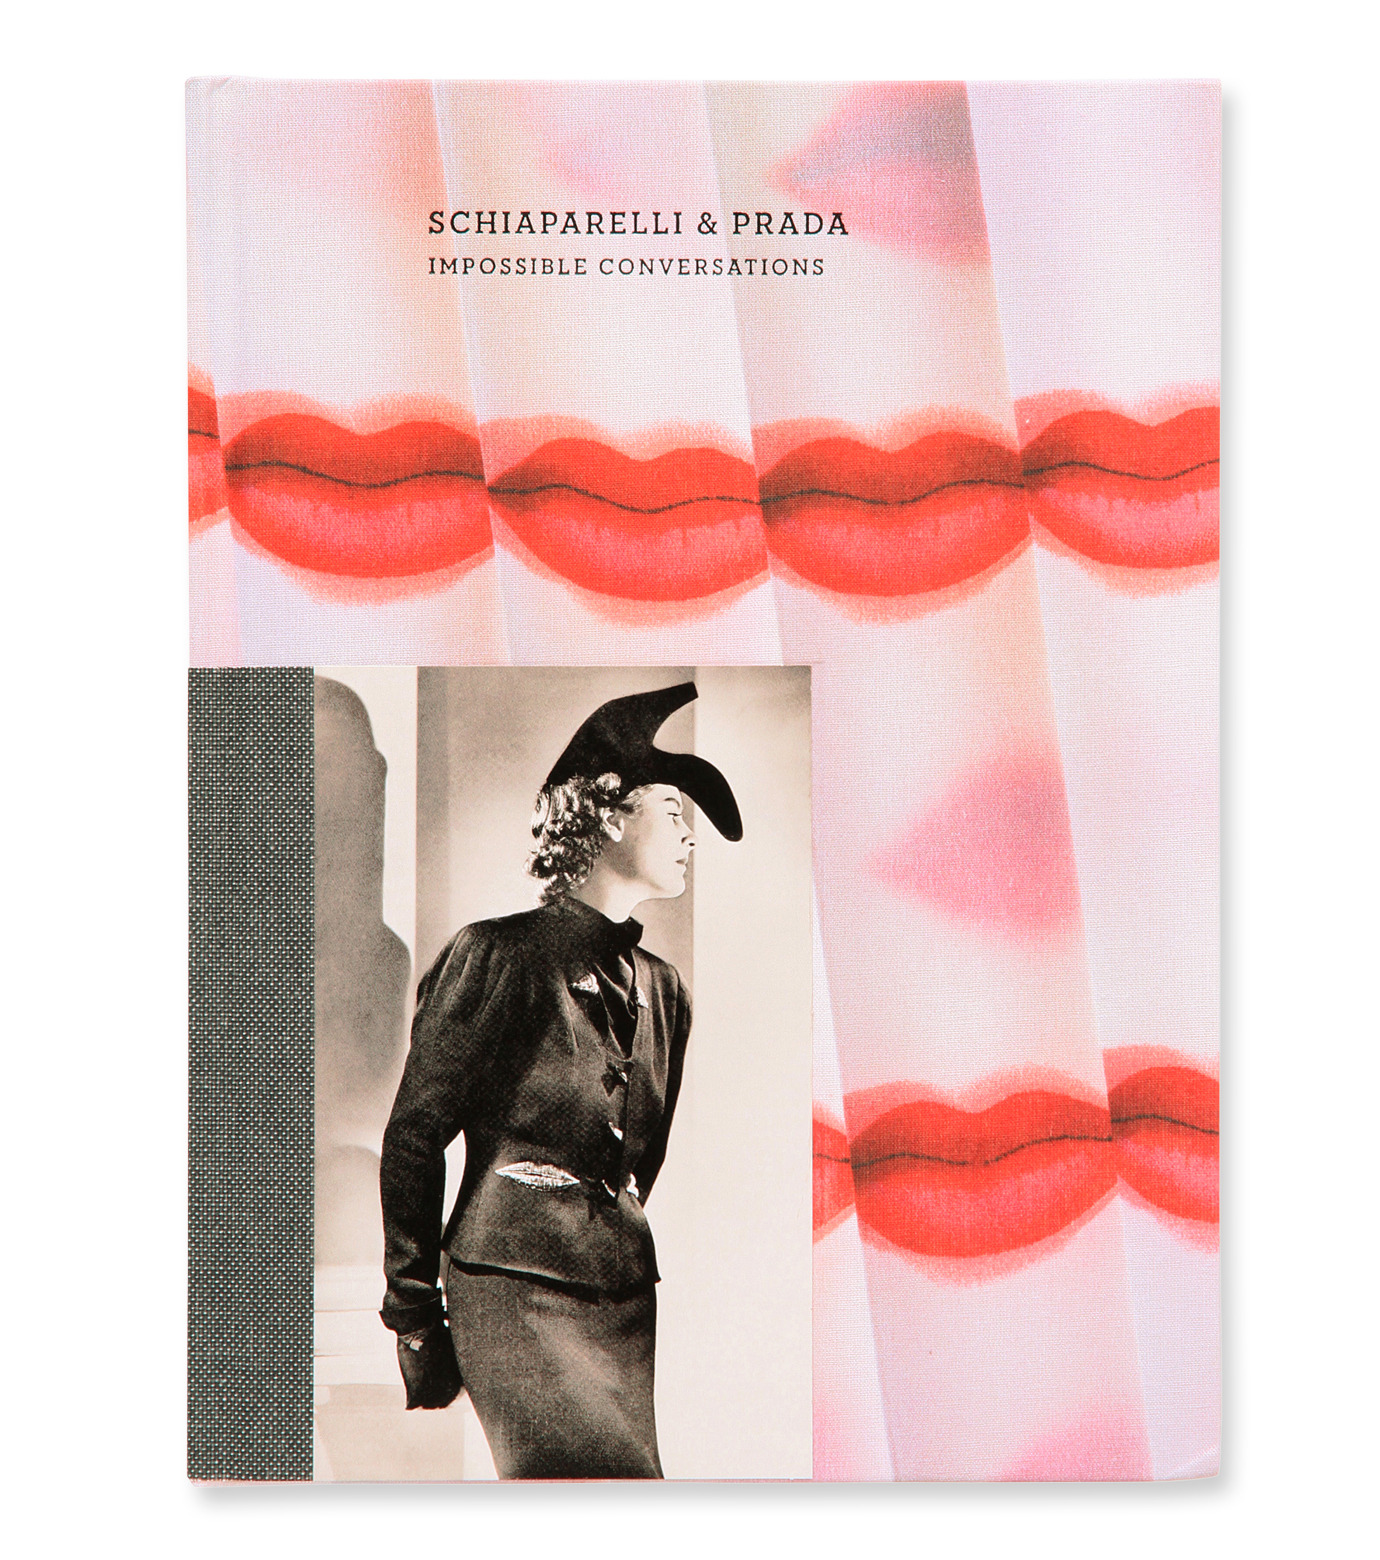 ArtBook(アートブック)のSchiaparelli and prada-RED(インテリア/OTHER-GOODS/interior/OTHER-GOODS)-300-17955-2-62 拡大詳細画像1